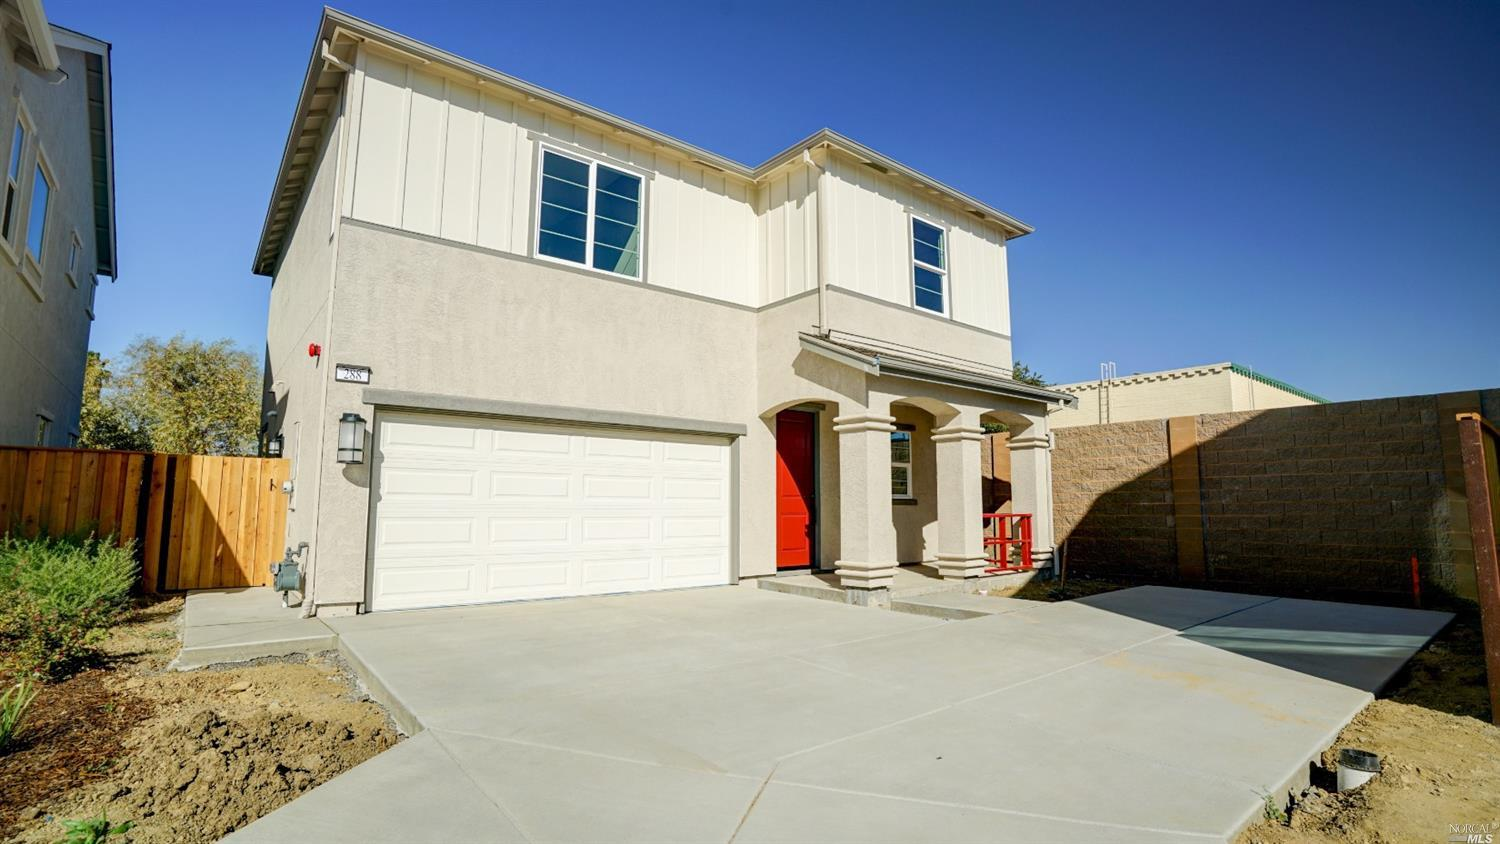 Brand NEW energy-efficient home in the Gardenstone community. No HOA or Mello-Roos. Residence 1- Two